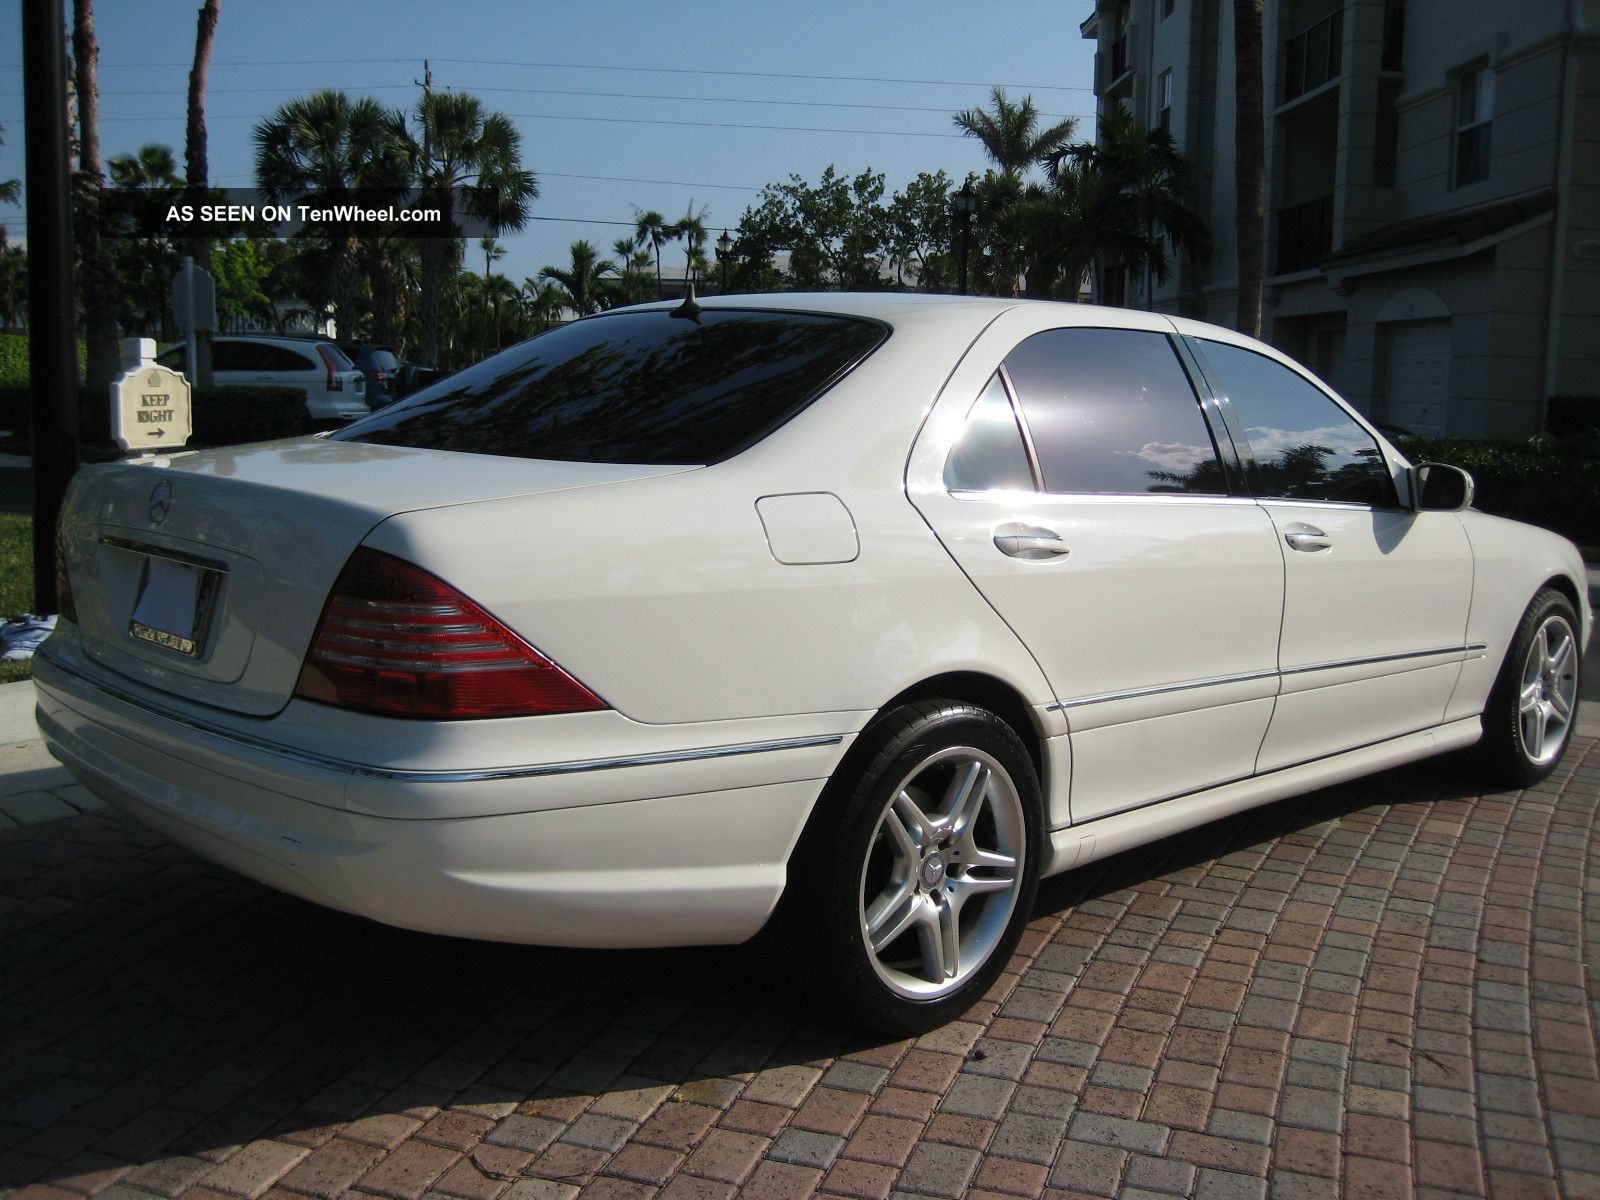 2002 mercedes benz s430 sedan amg sport package navi for 2002 s430 mercedes benz